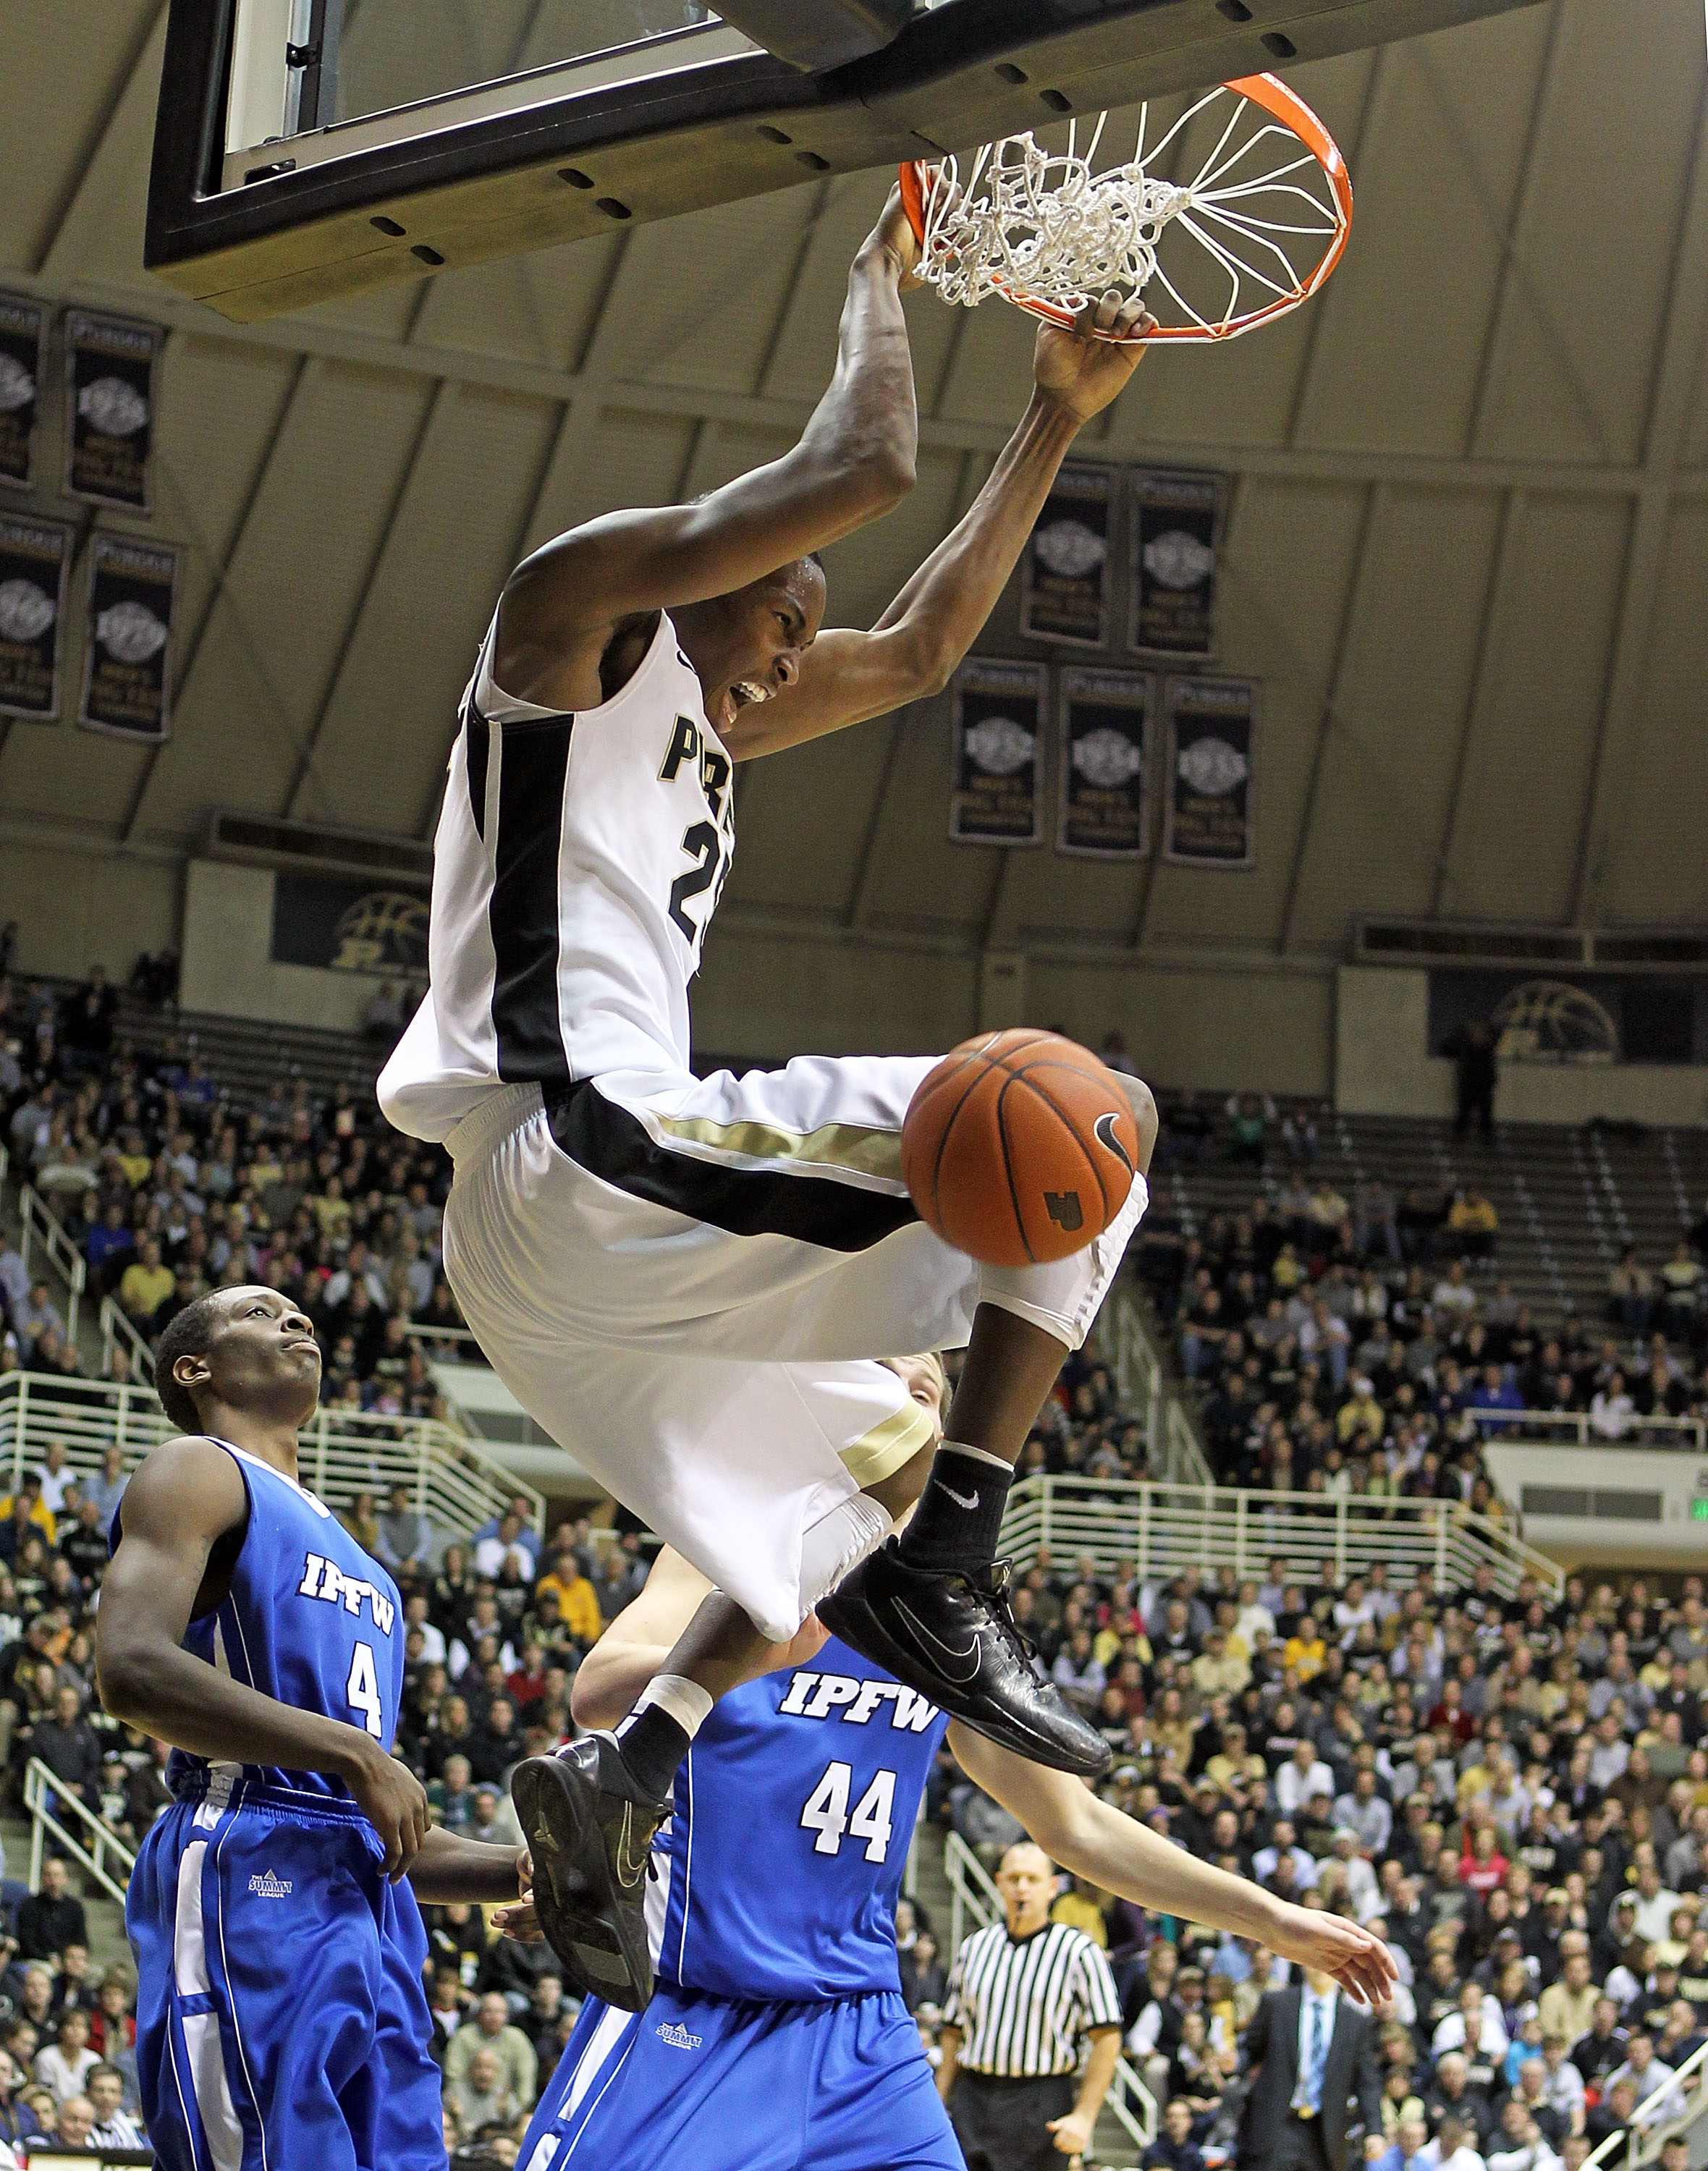 Purdue's hopes of a national title now rely even more heavily on the back of JaJuan Johnson.